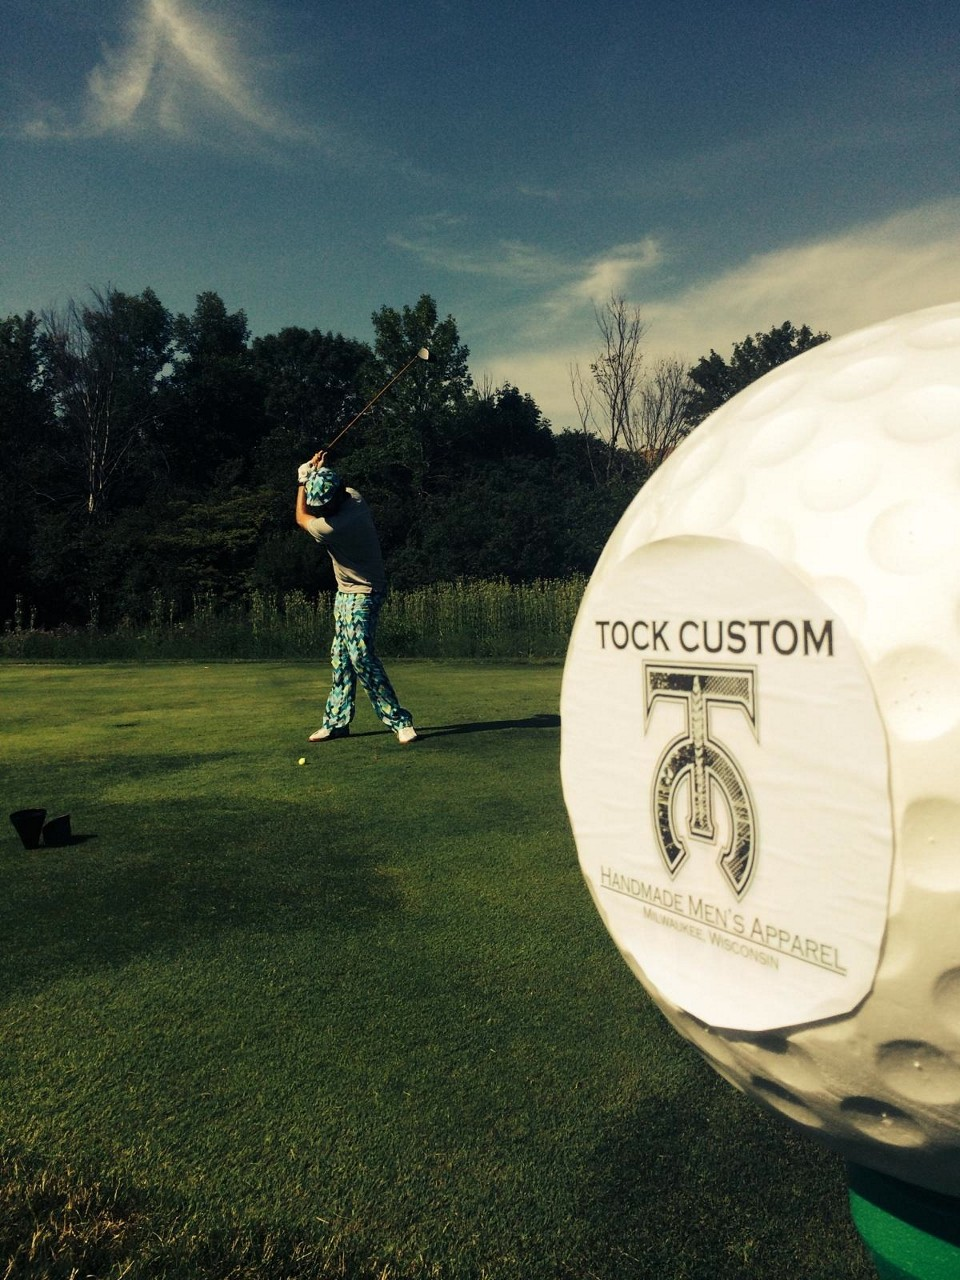 Tock Custom Golf